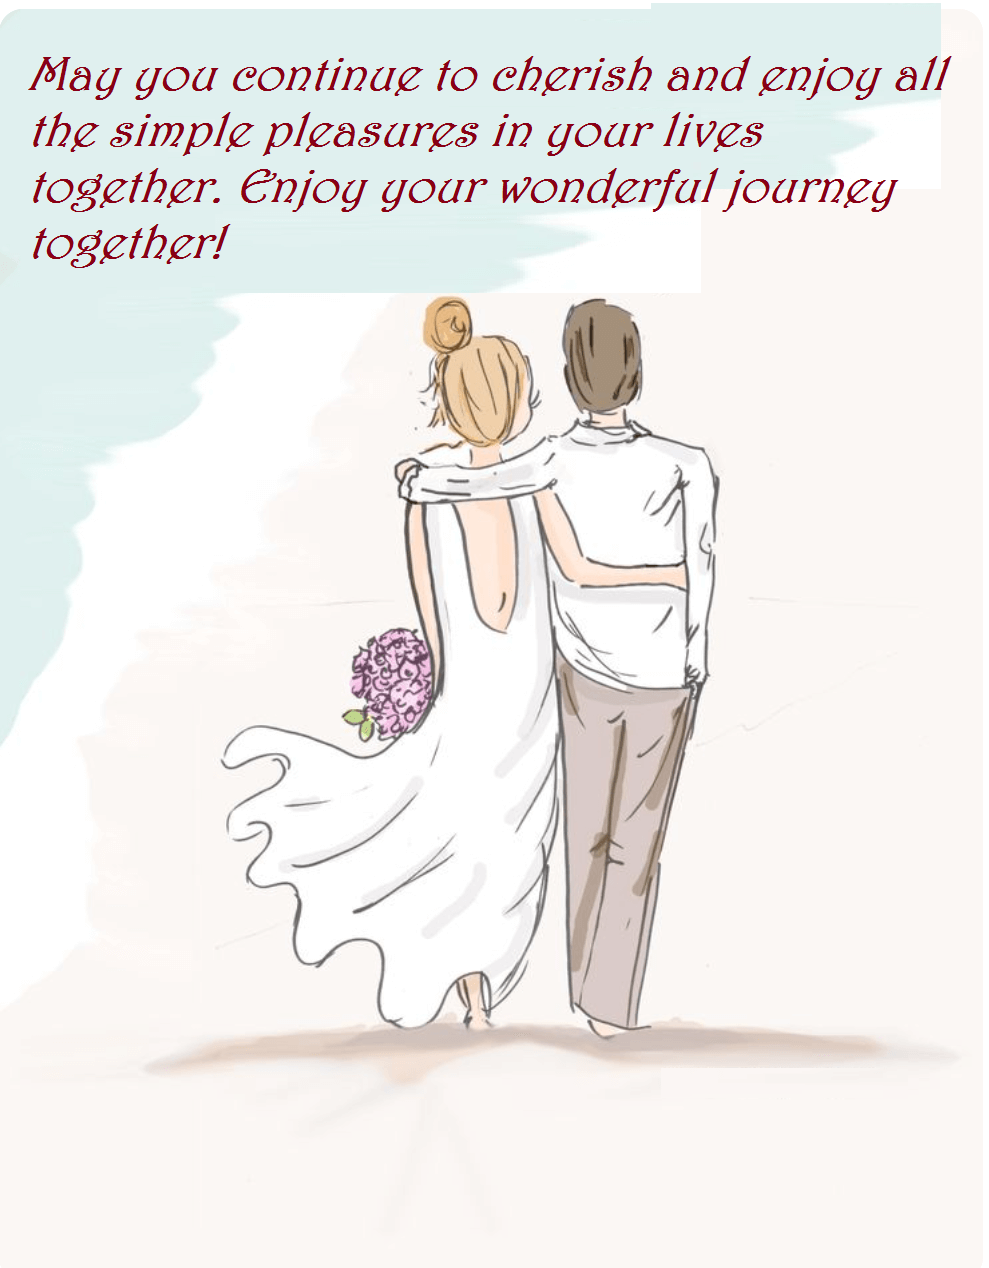 5th Marriage Anniversary Quotes Wishes Images Marriage Anniversary Quotes Heather Stillufsen Quotes Anniversary Quotes